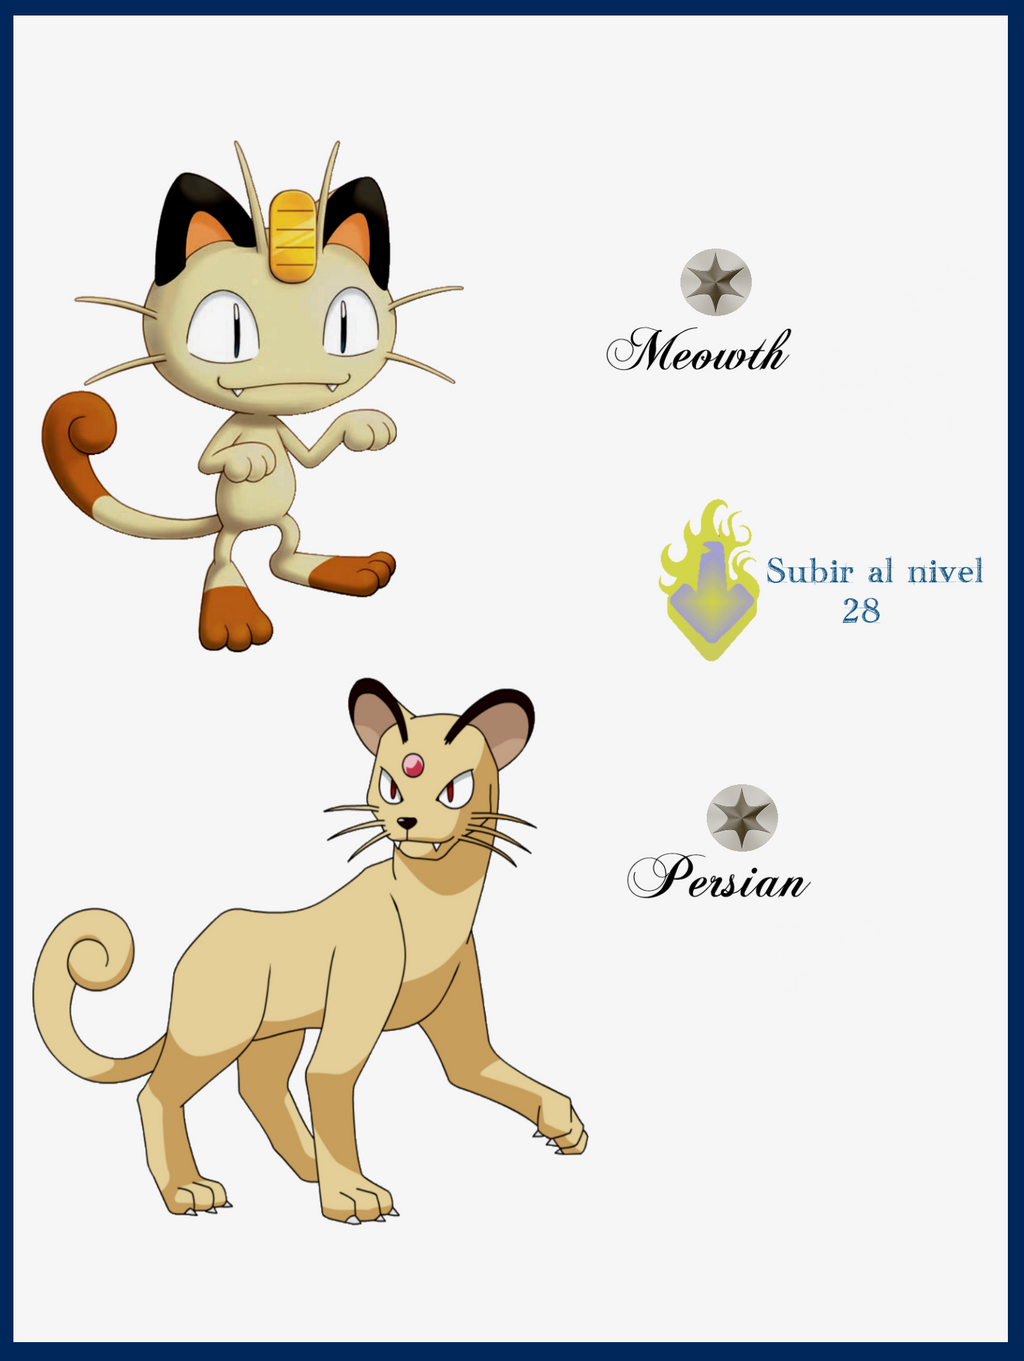 022 meowth evoluciones by maxconnery on deviantart